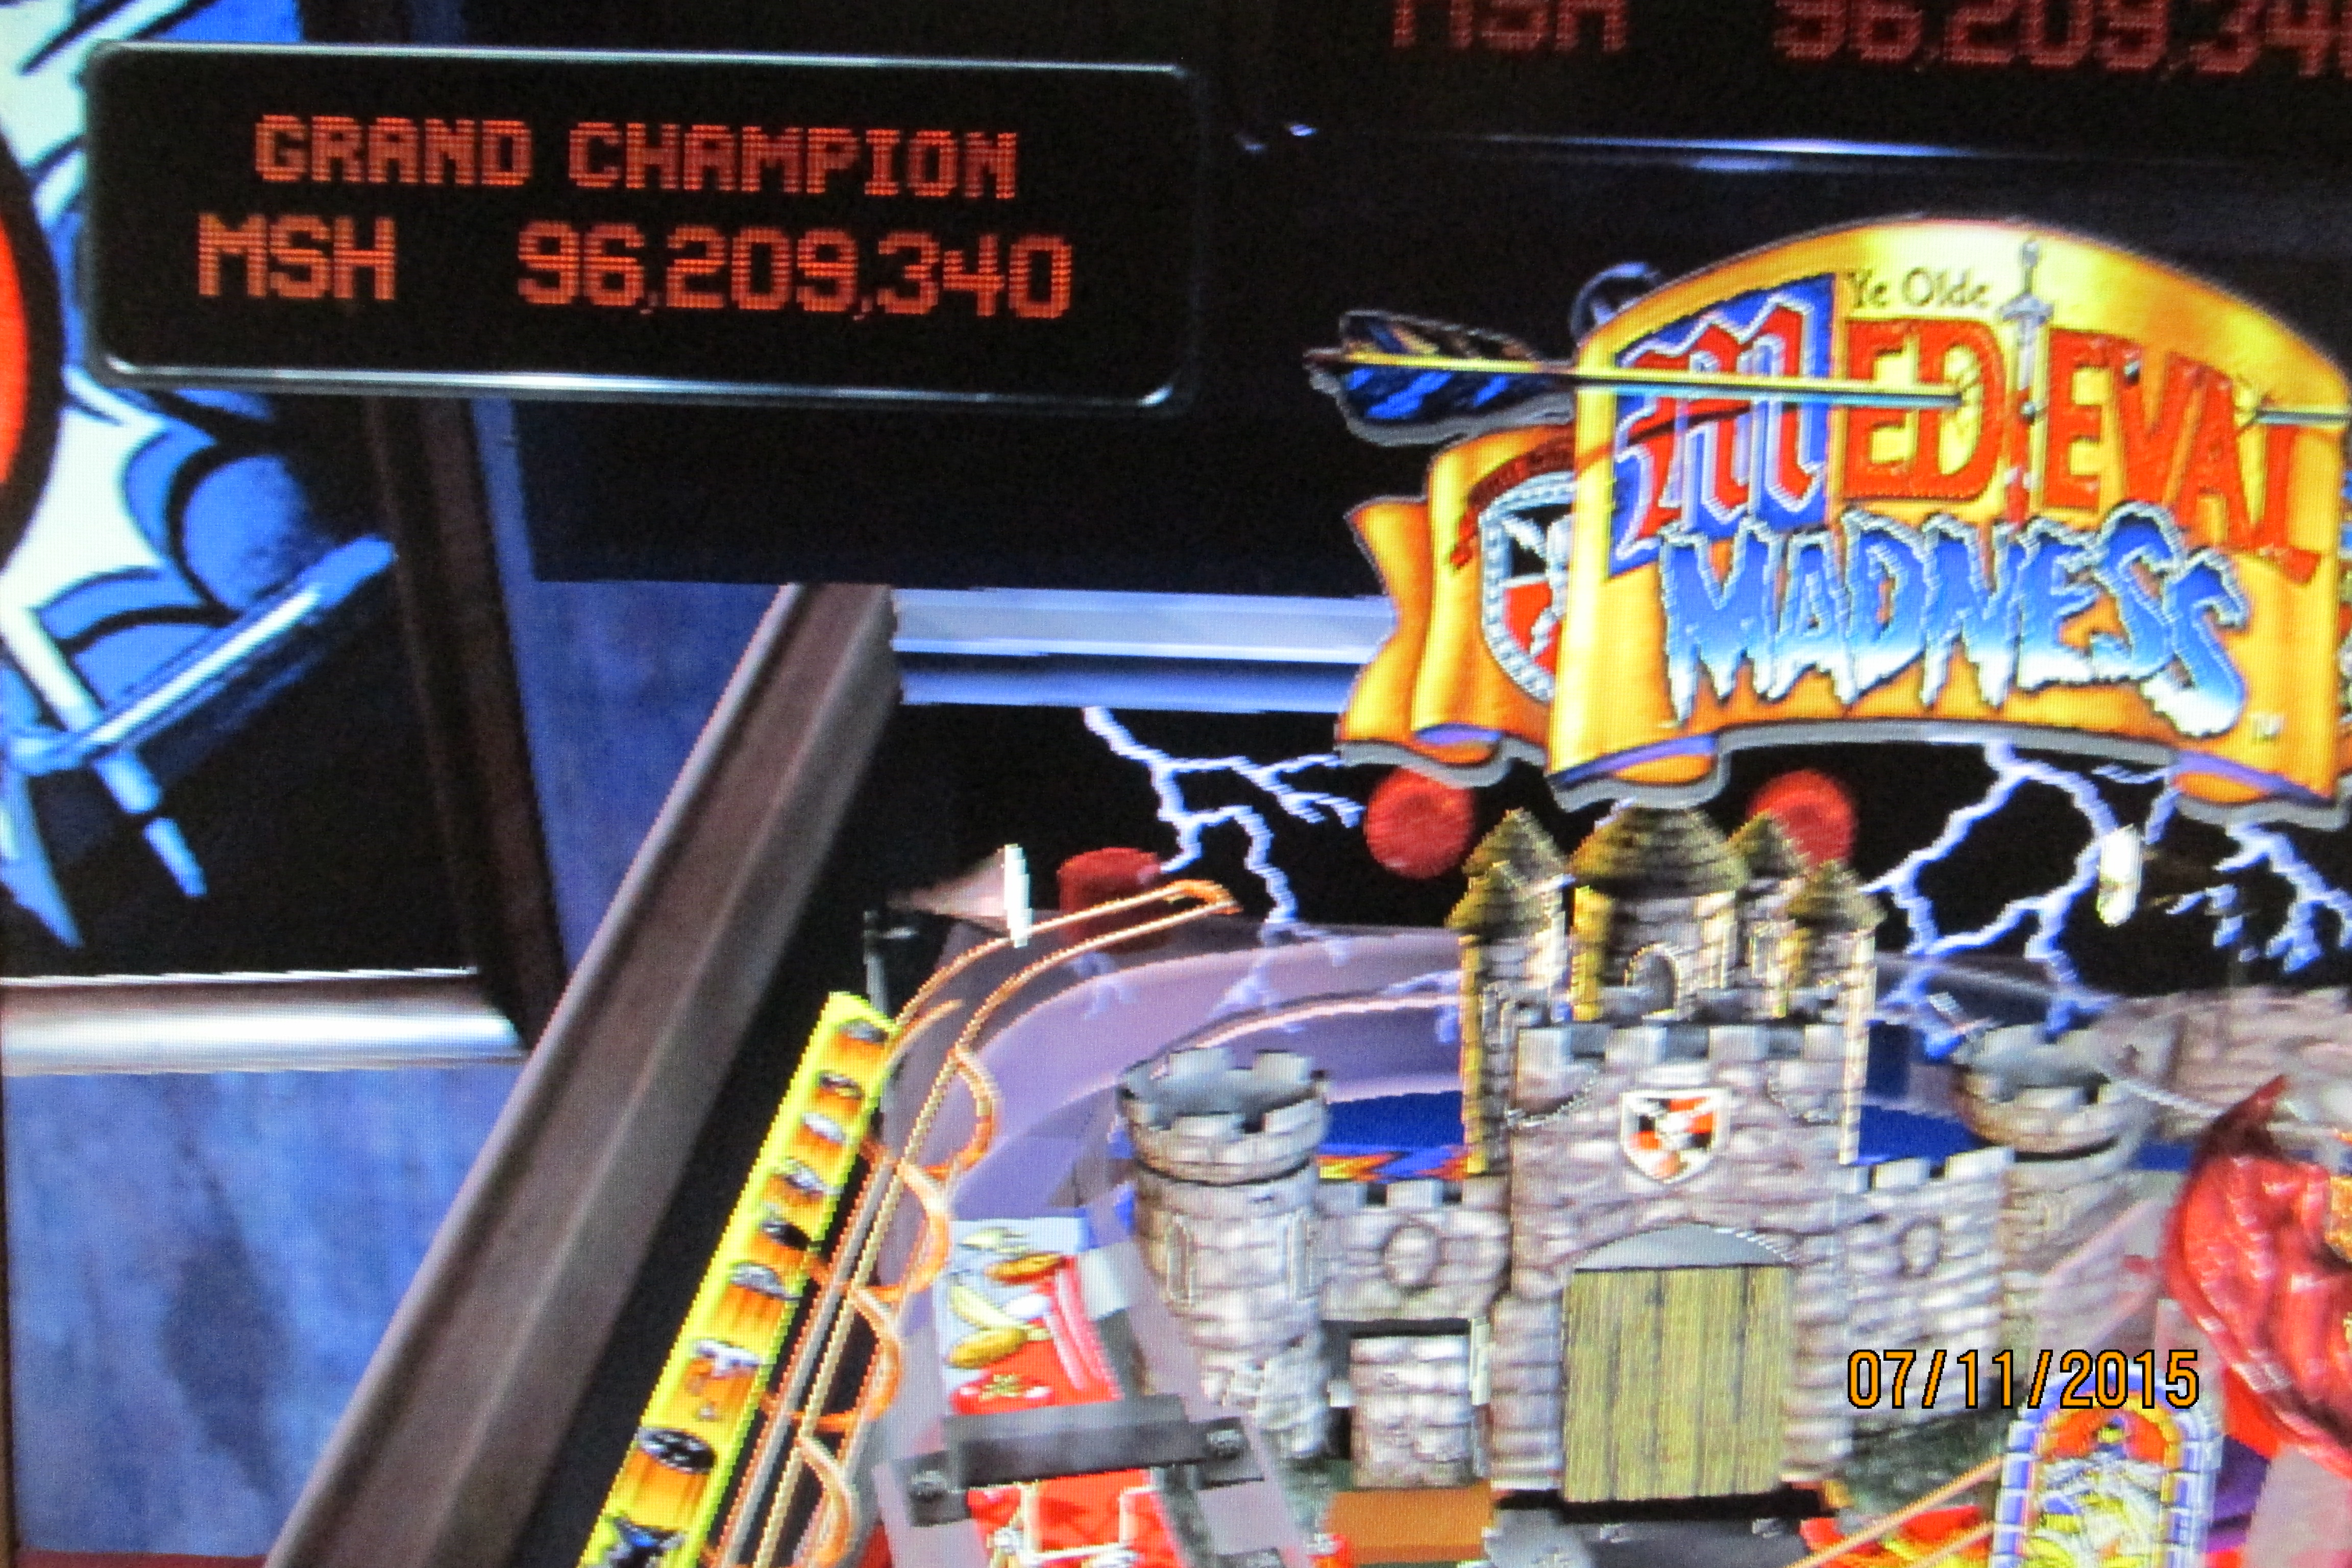 Mark: Pinball Arcade: Medieval Madness (PC) 96,209,340 points on 2015-07-14 00:47:34